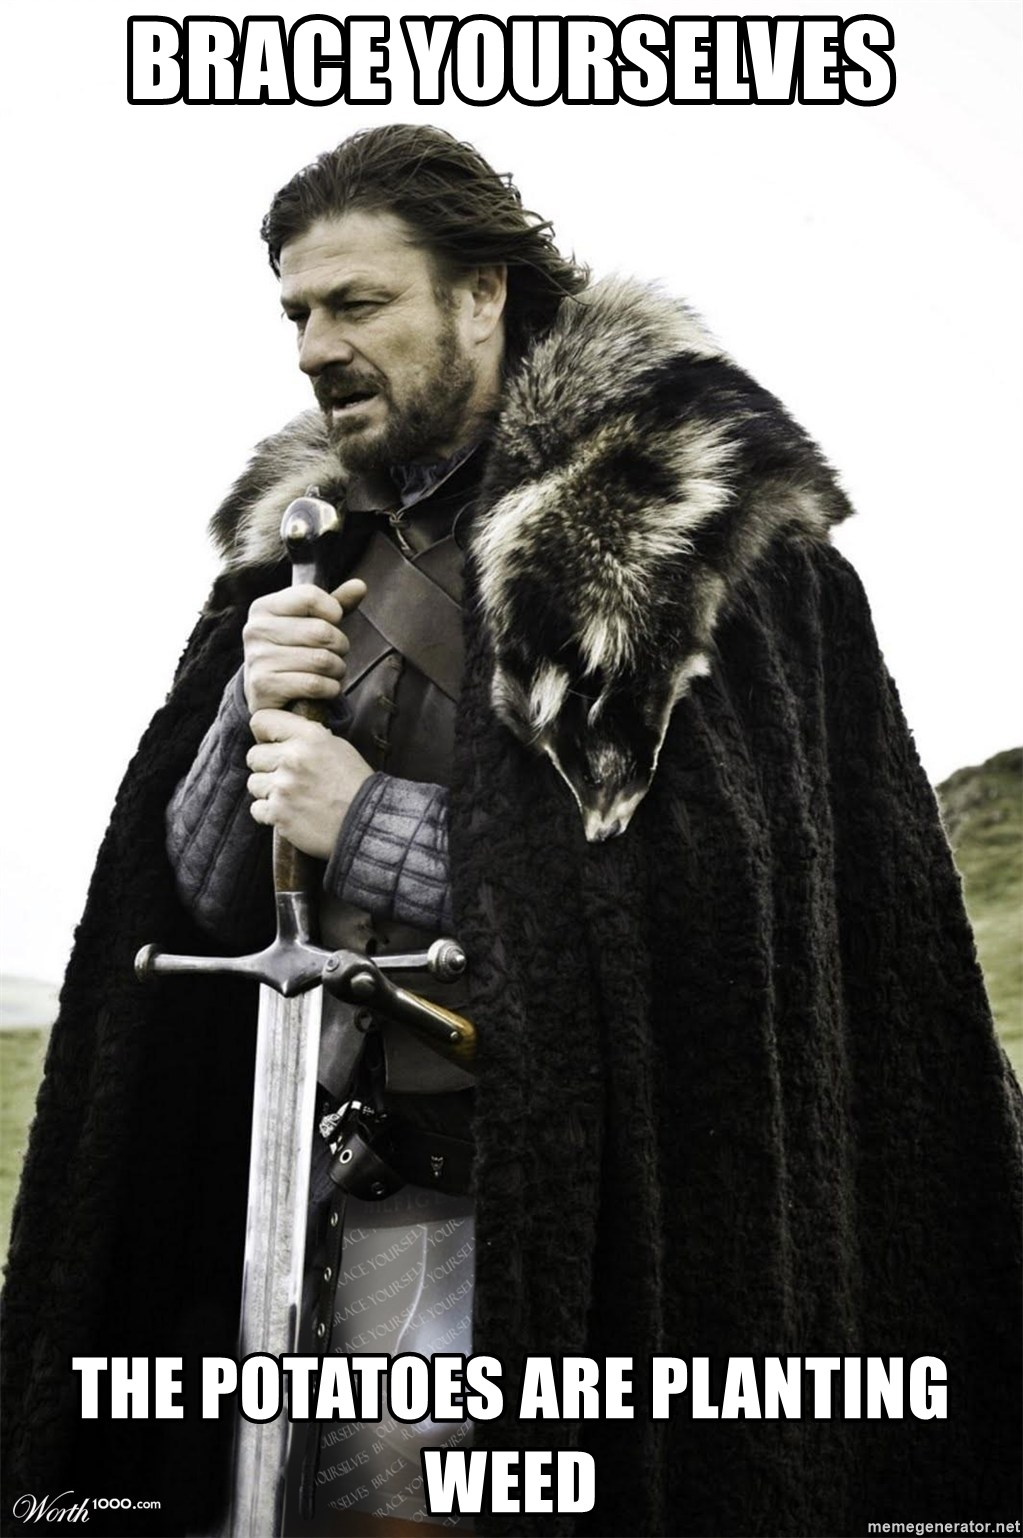 Brace Yourselves.  John is turning 21. - Brace Yourselves the potatoes are planting weed